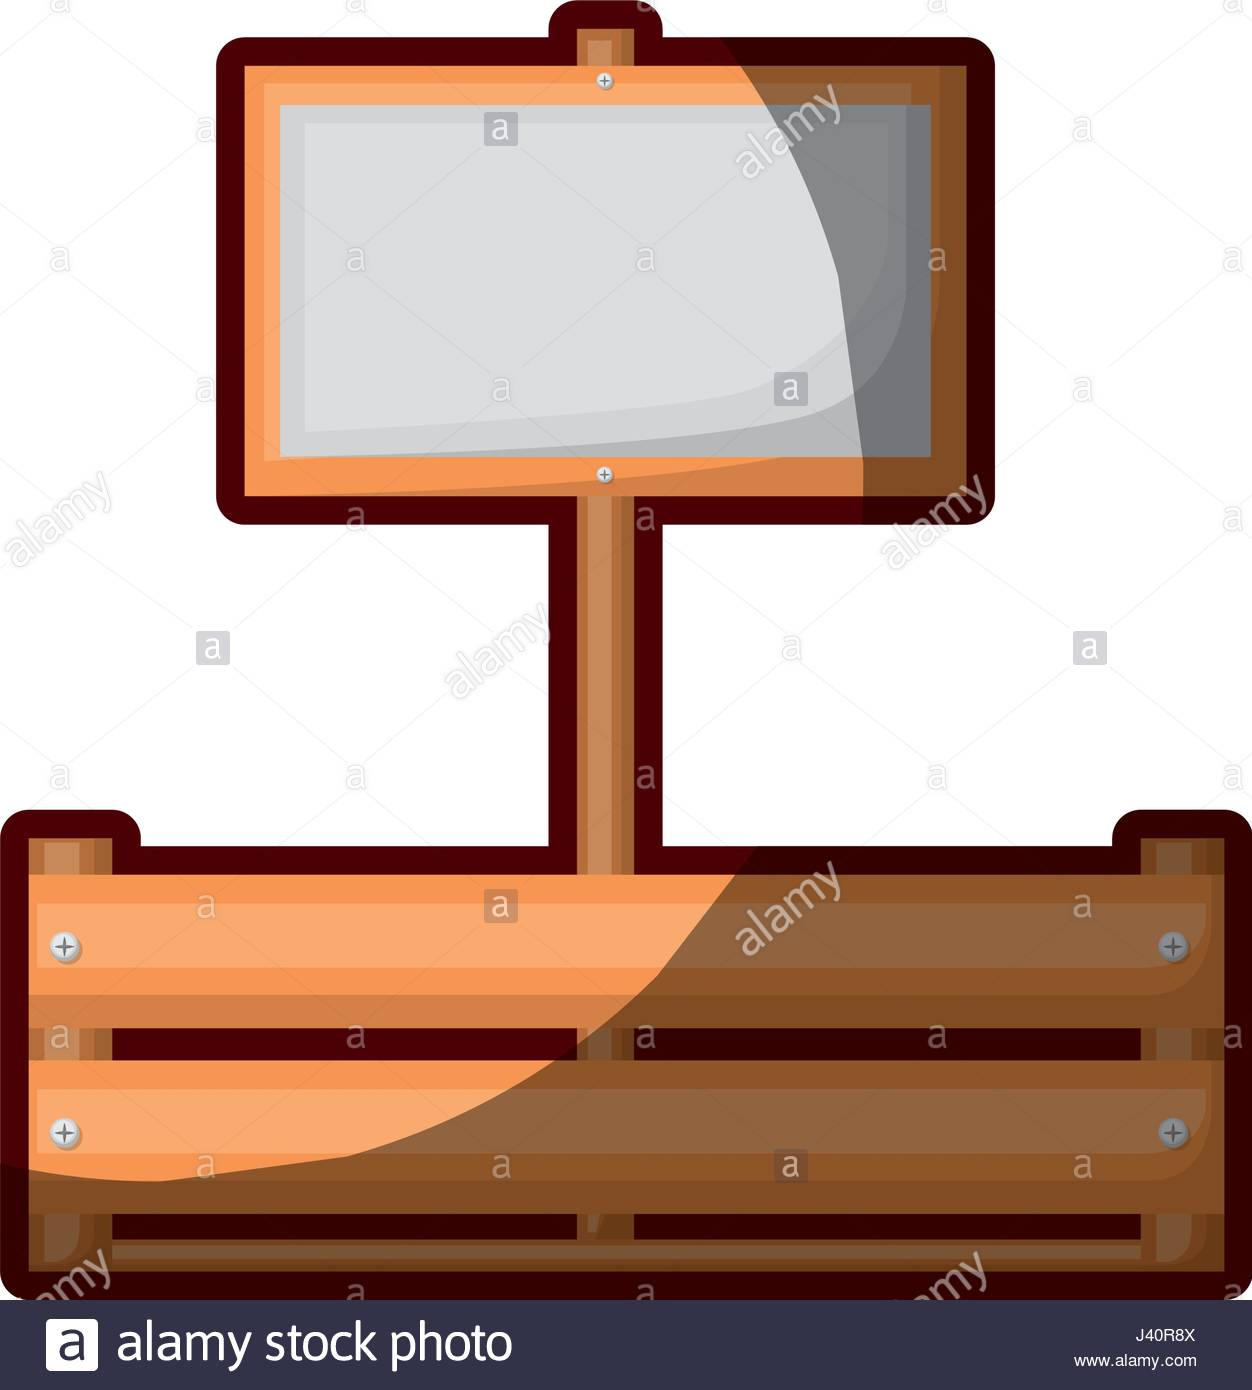 1252x1390 Colorful Silhouette Of Wooden Box With Banner And Half Shadow